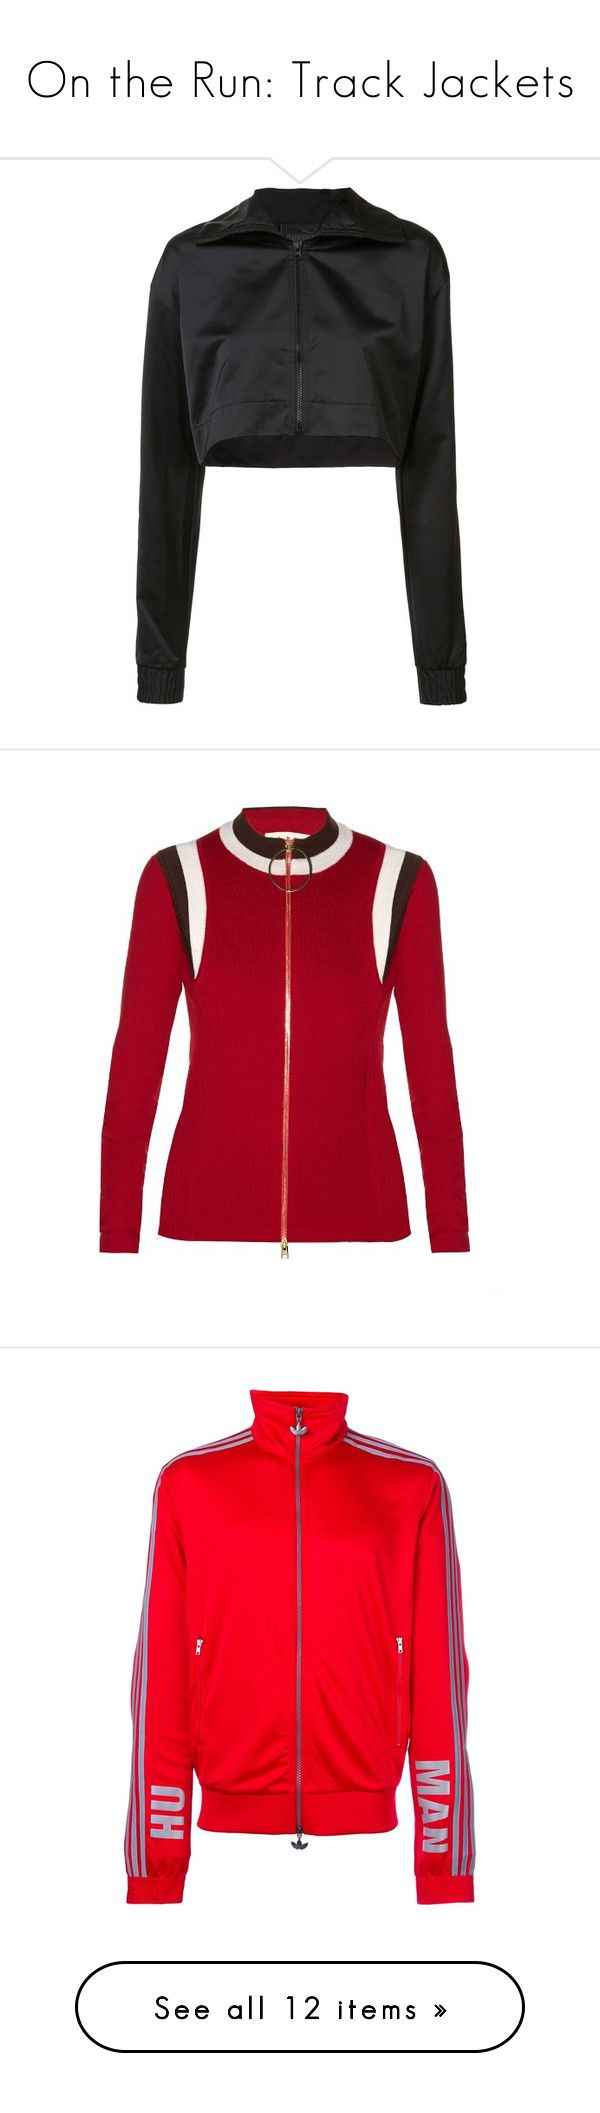 """""""On the Run: Track Jackets"""" by polyvore-editorial ❤ liked on Polyvore featuring trackjackets, black, activewear, activewear jackets, green, logo sportswear, track jacket, adidas activewear, tracksuit jacket and adidas"""